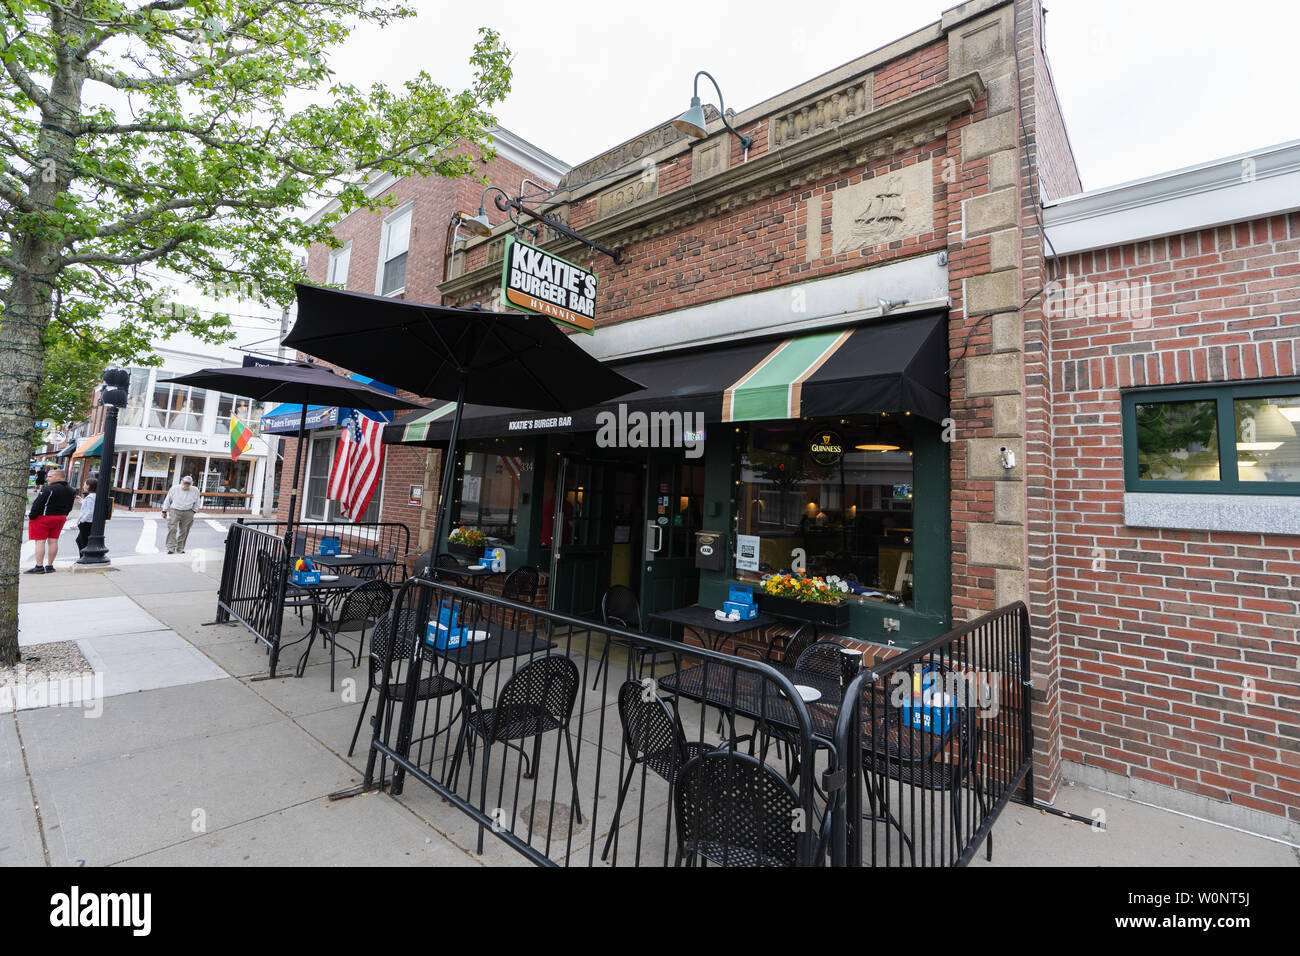 Hyannis, MA - June 10, 2019: KKatie's Burger Bar offers outdoor seating and was voted Best Burger on the South Shore by South Shore Living Magazine. K - Stock Image